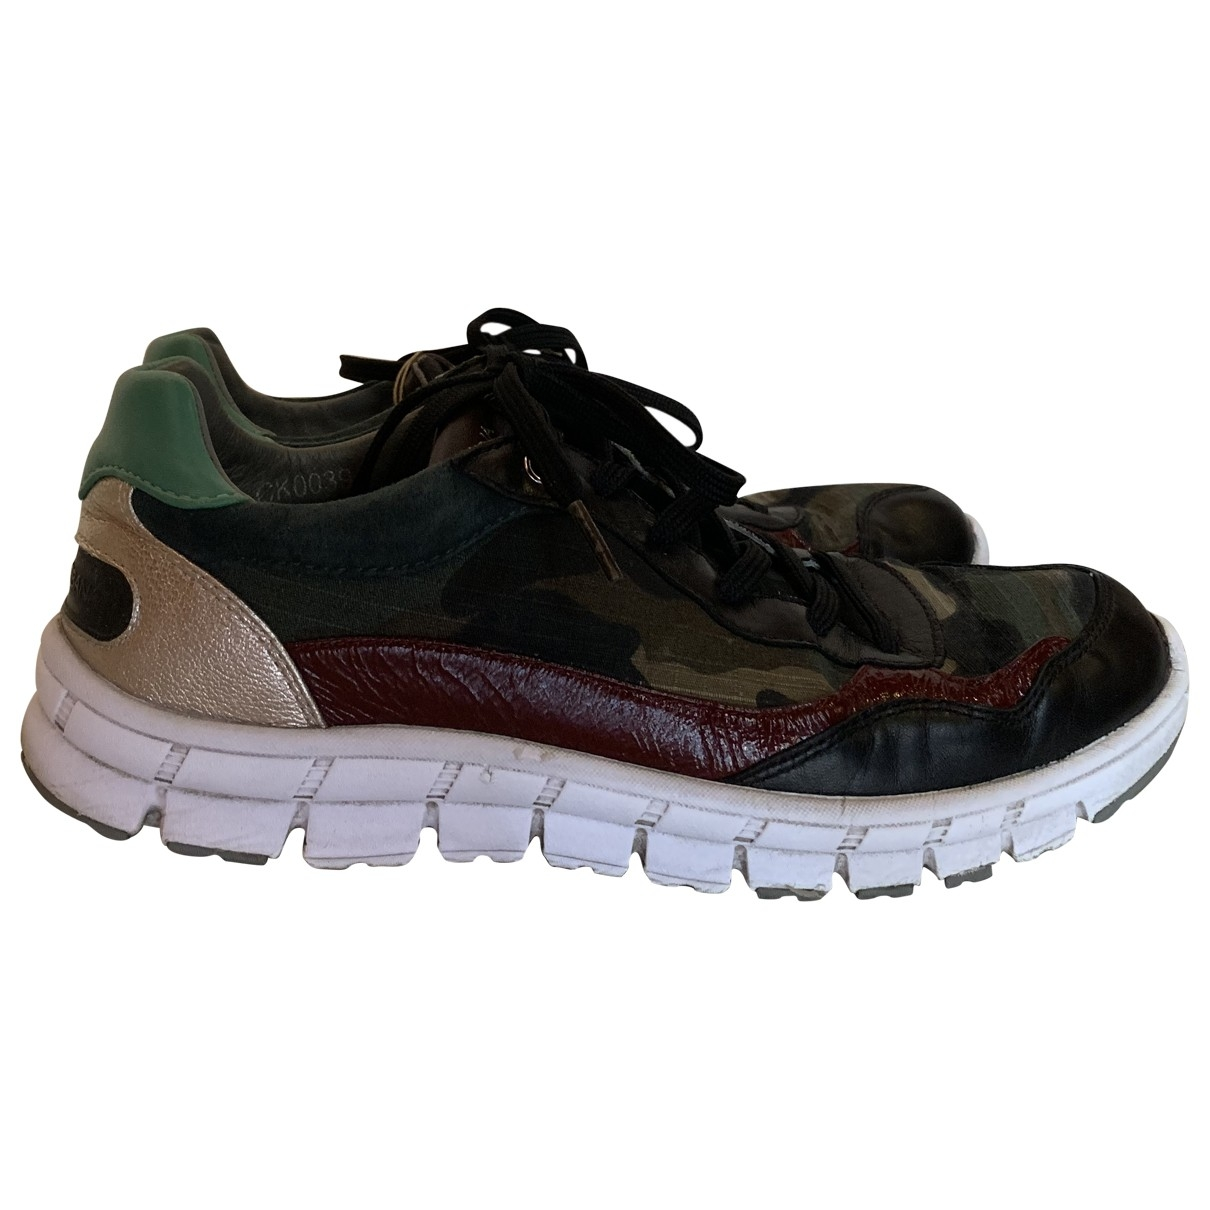 Dolce & Gabbana \N Multicolour Leather Trainers for Women 37 EU